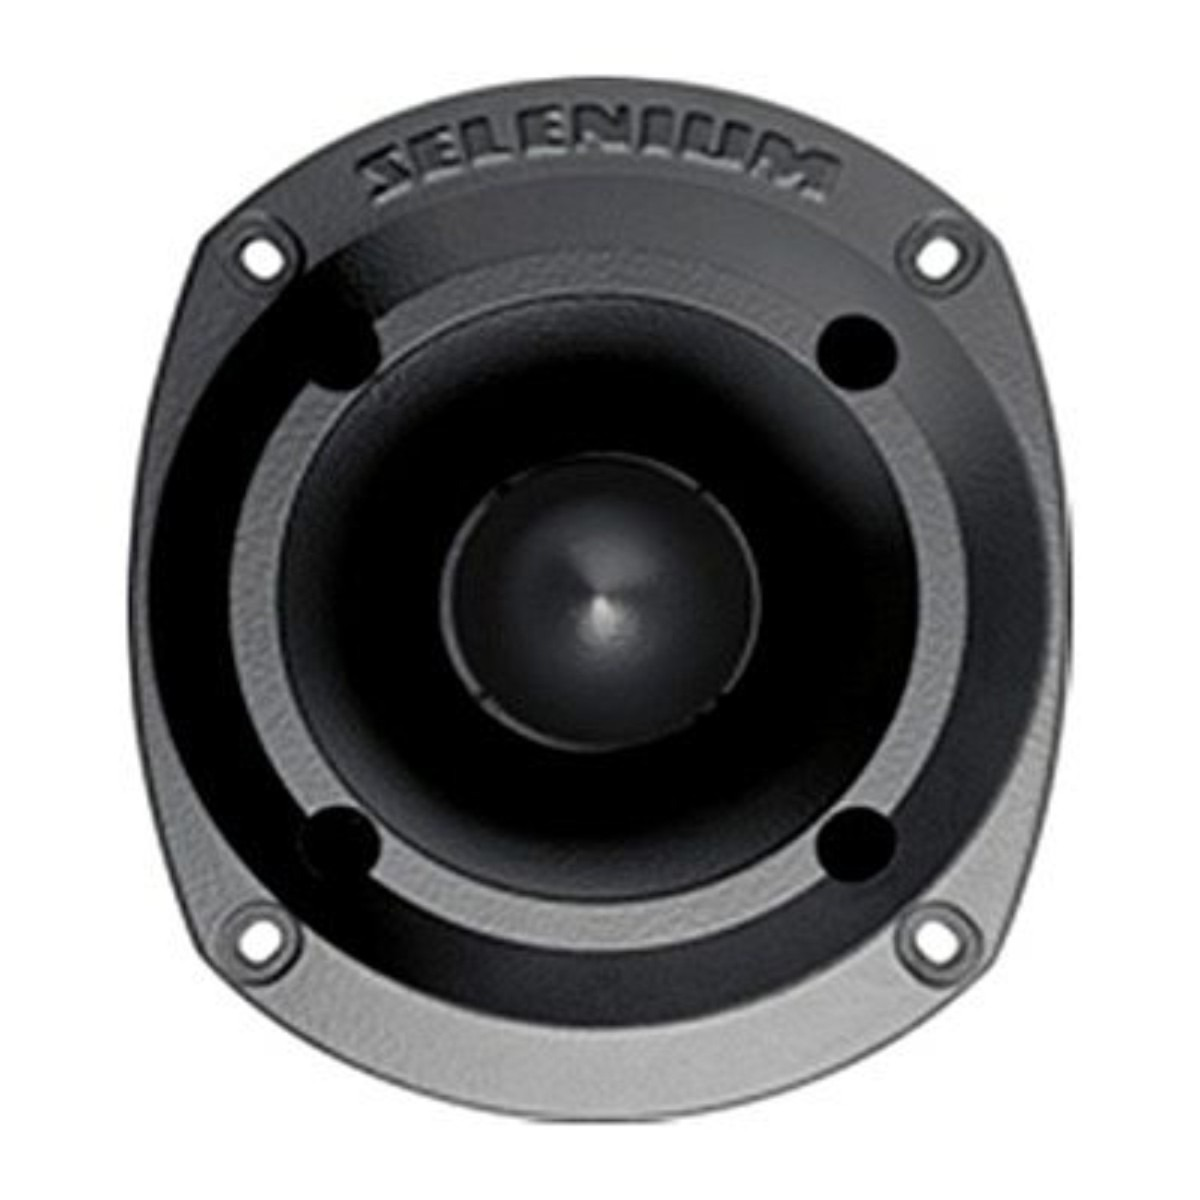 Super Tweeter Selenium Jbl St400 Black Trio 150w Rms Trio